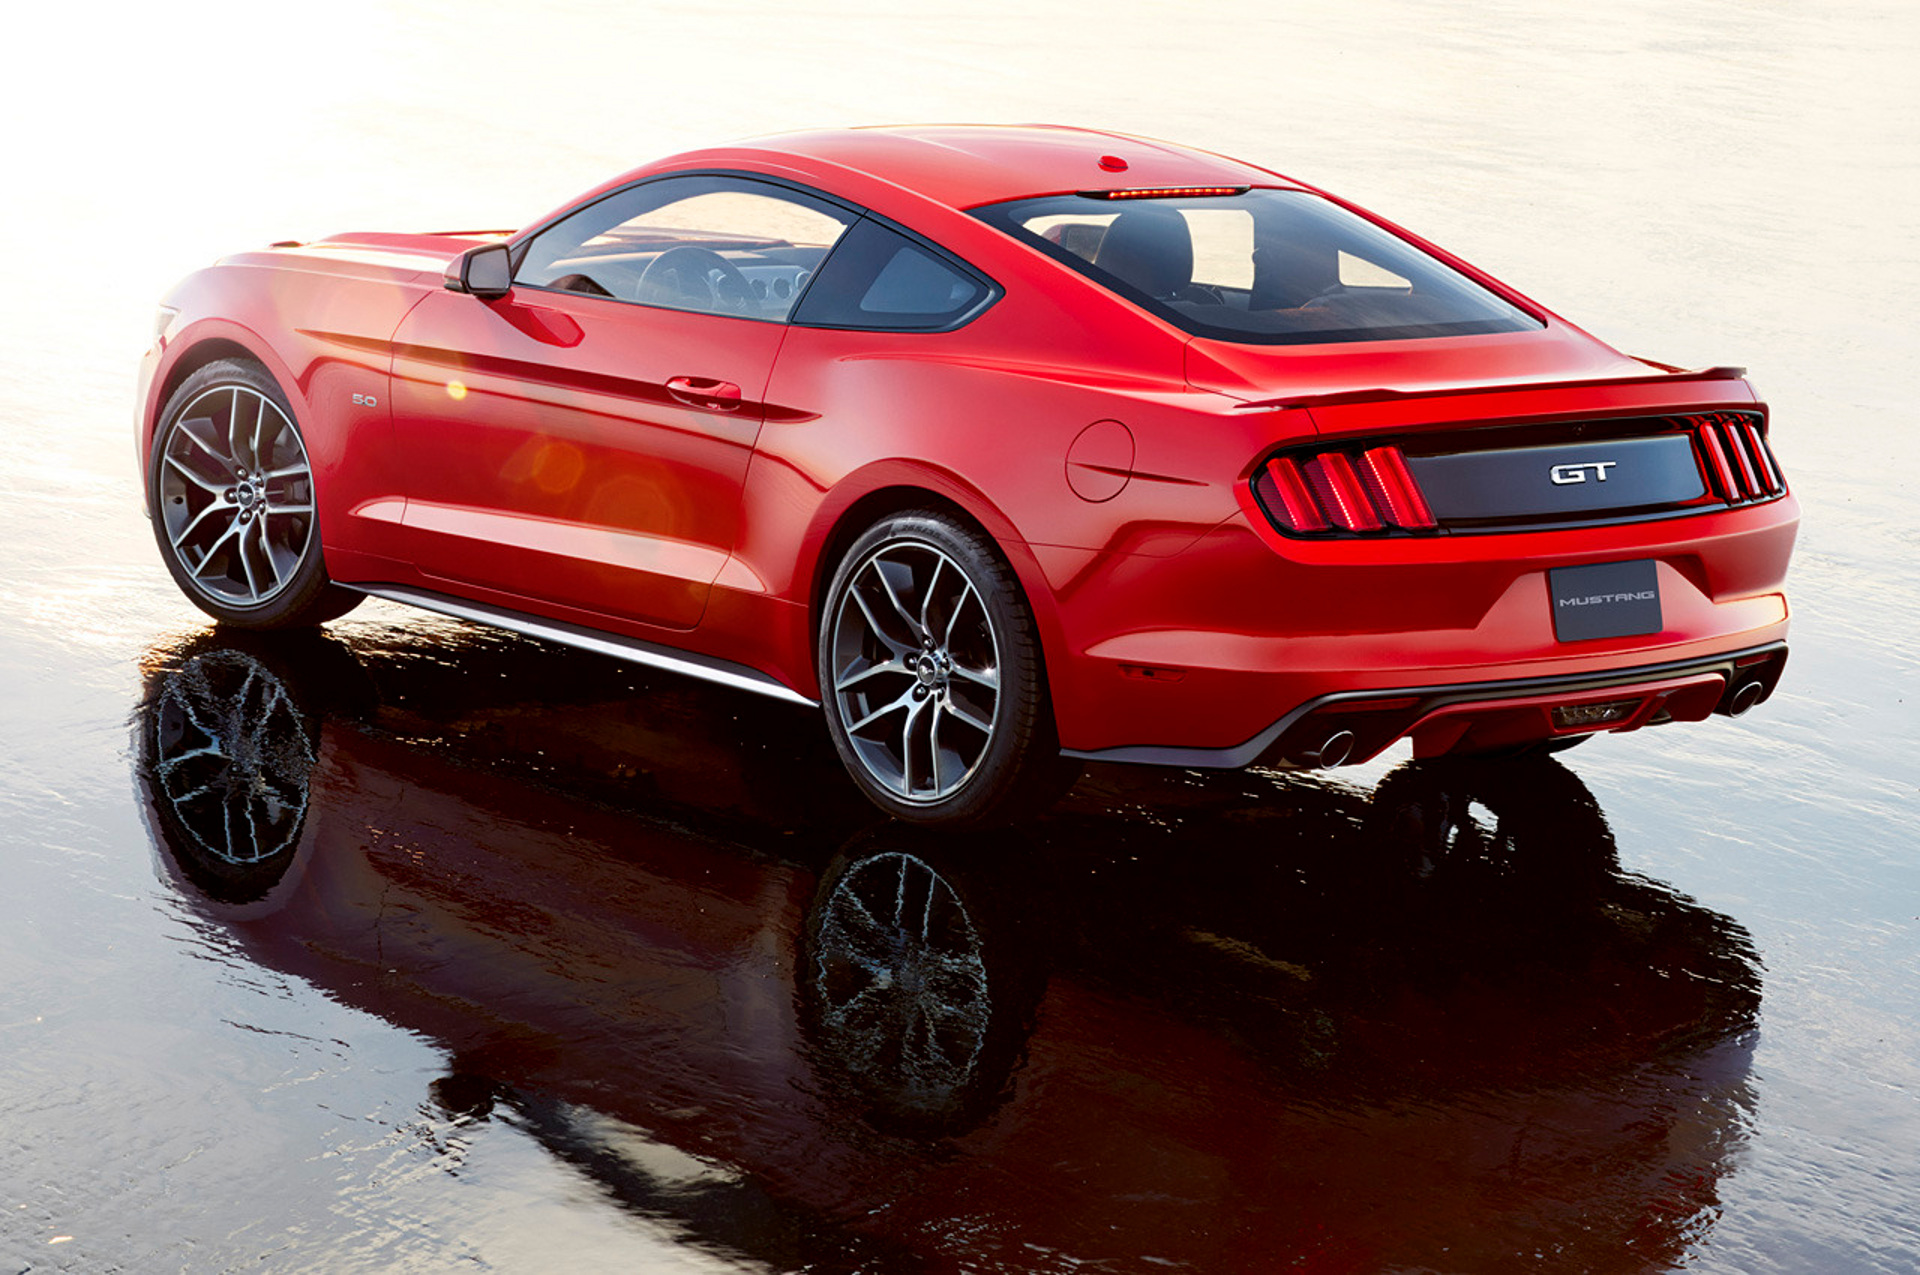 Ford Mustang photos